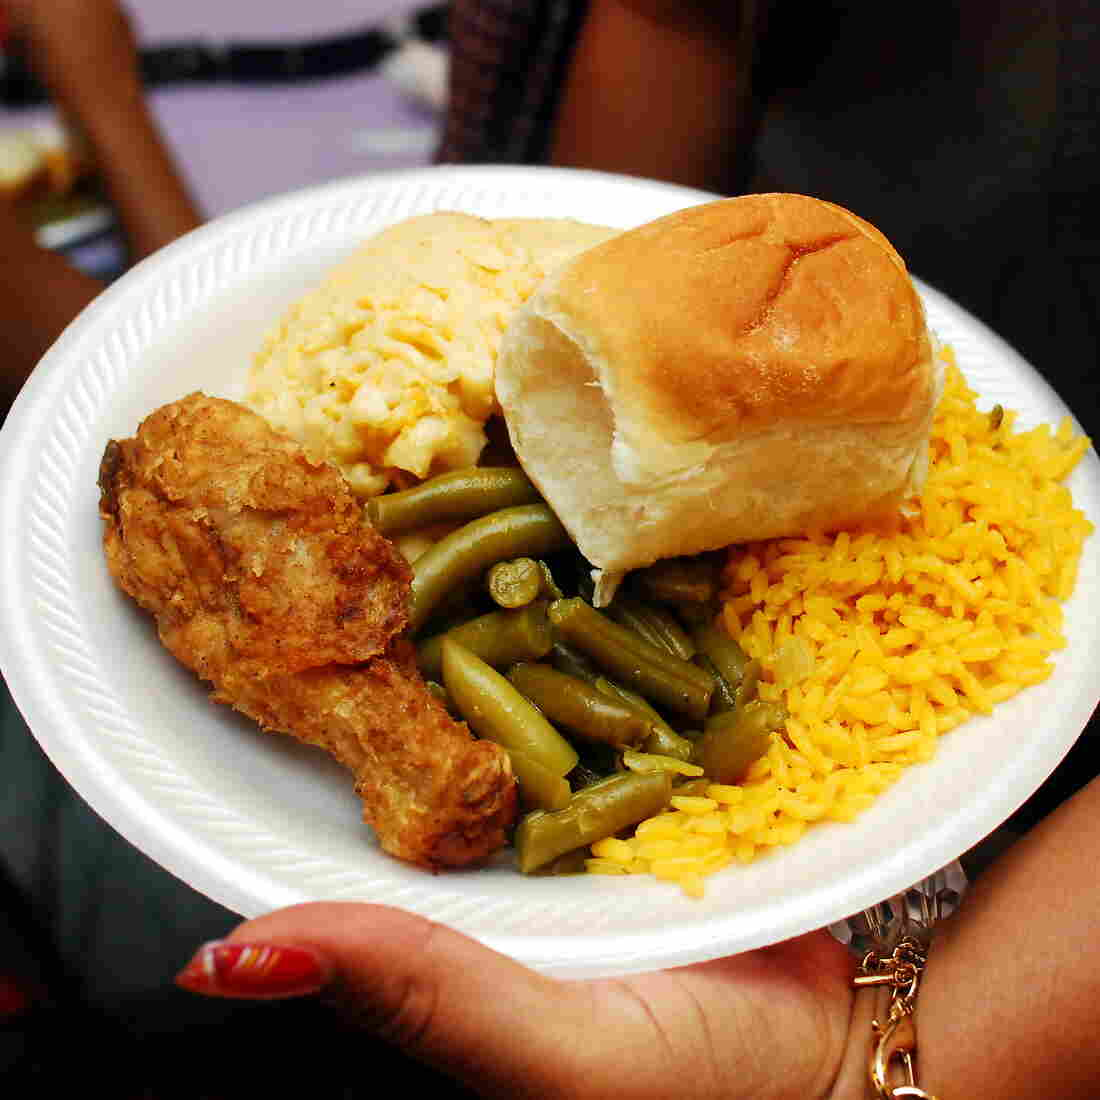 As a new documentary shows, a plate of soul food is loaded with questions about history, identity and health.